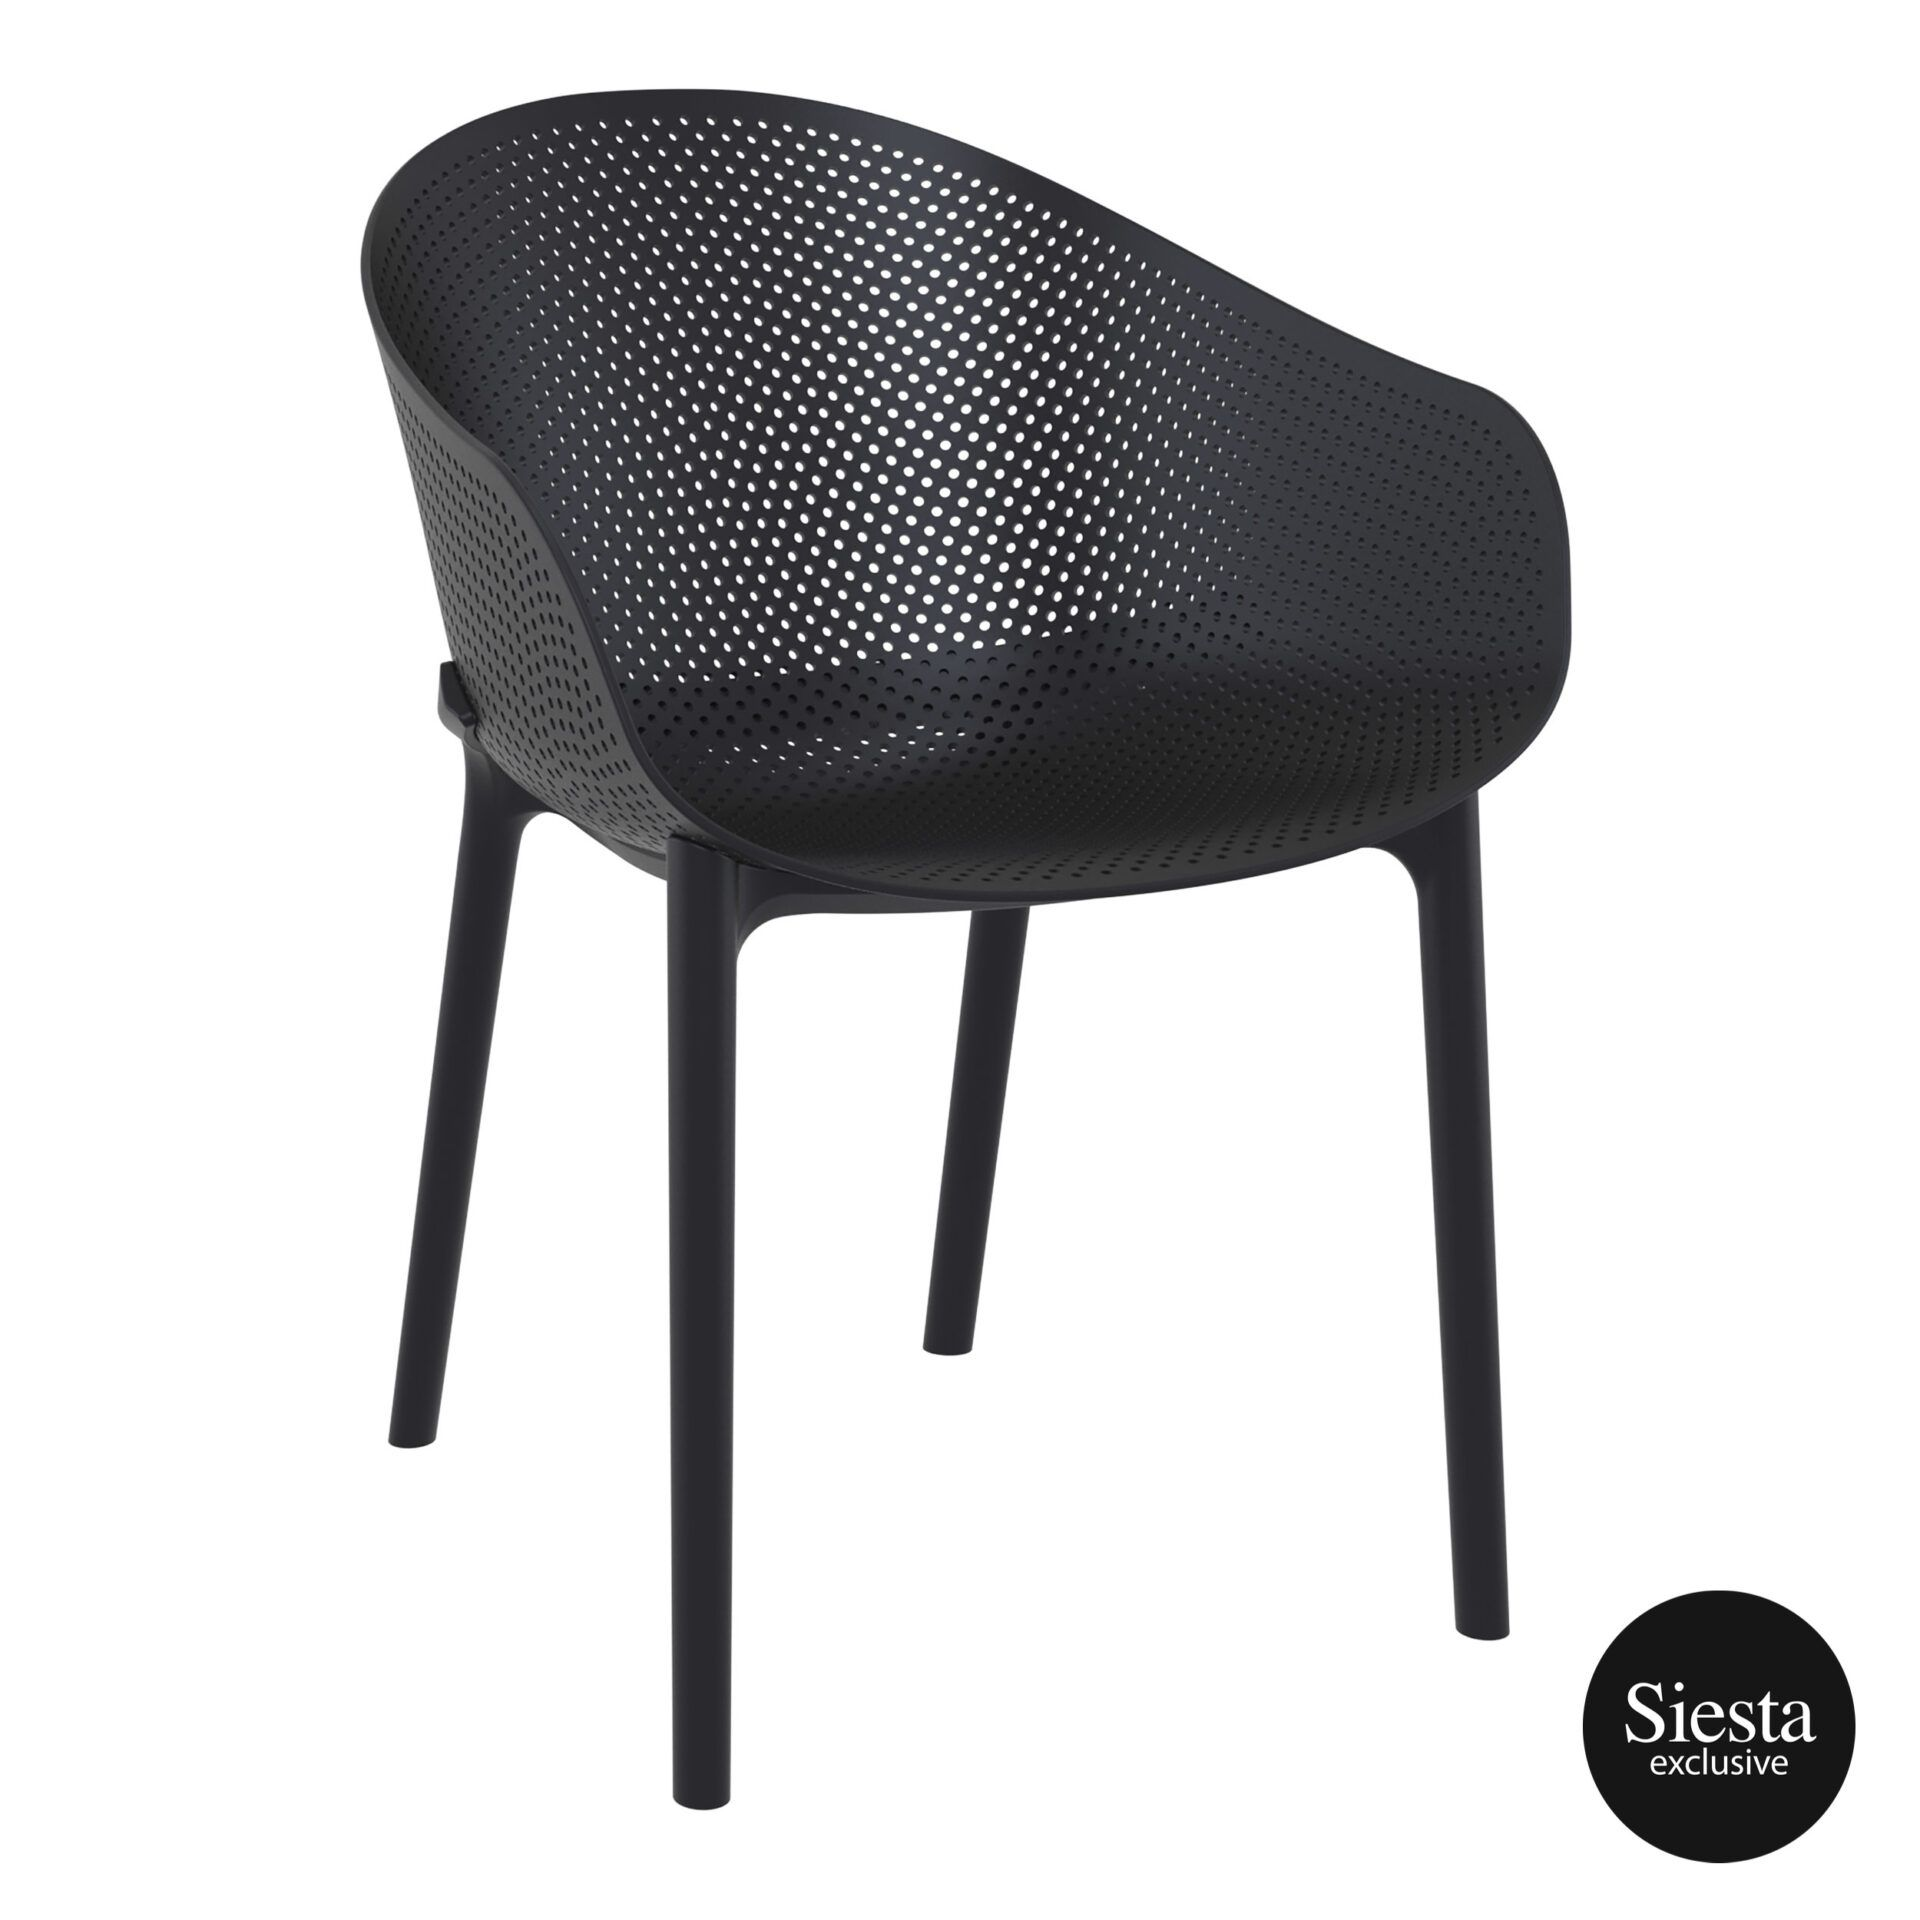 outdoor seating polypropylene sky chair black front side